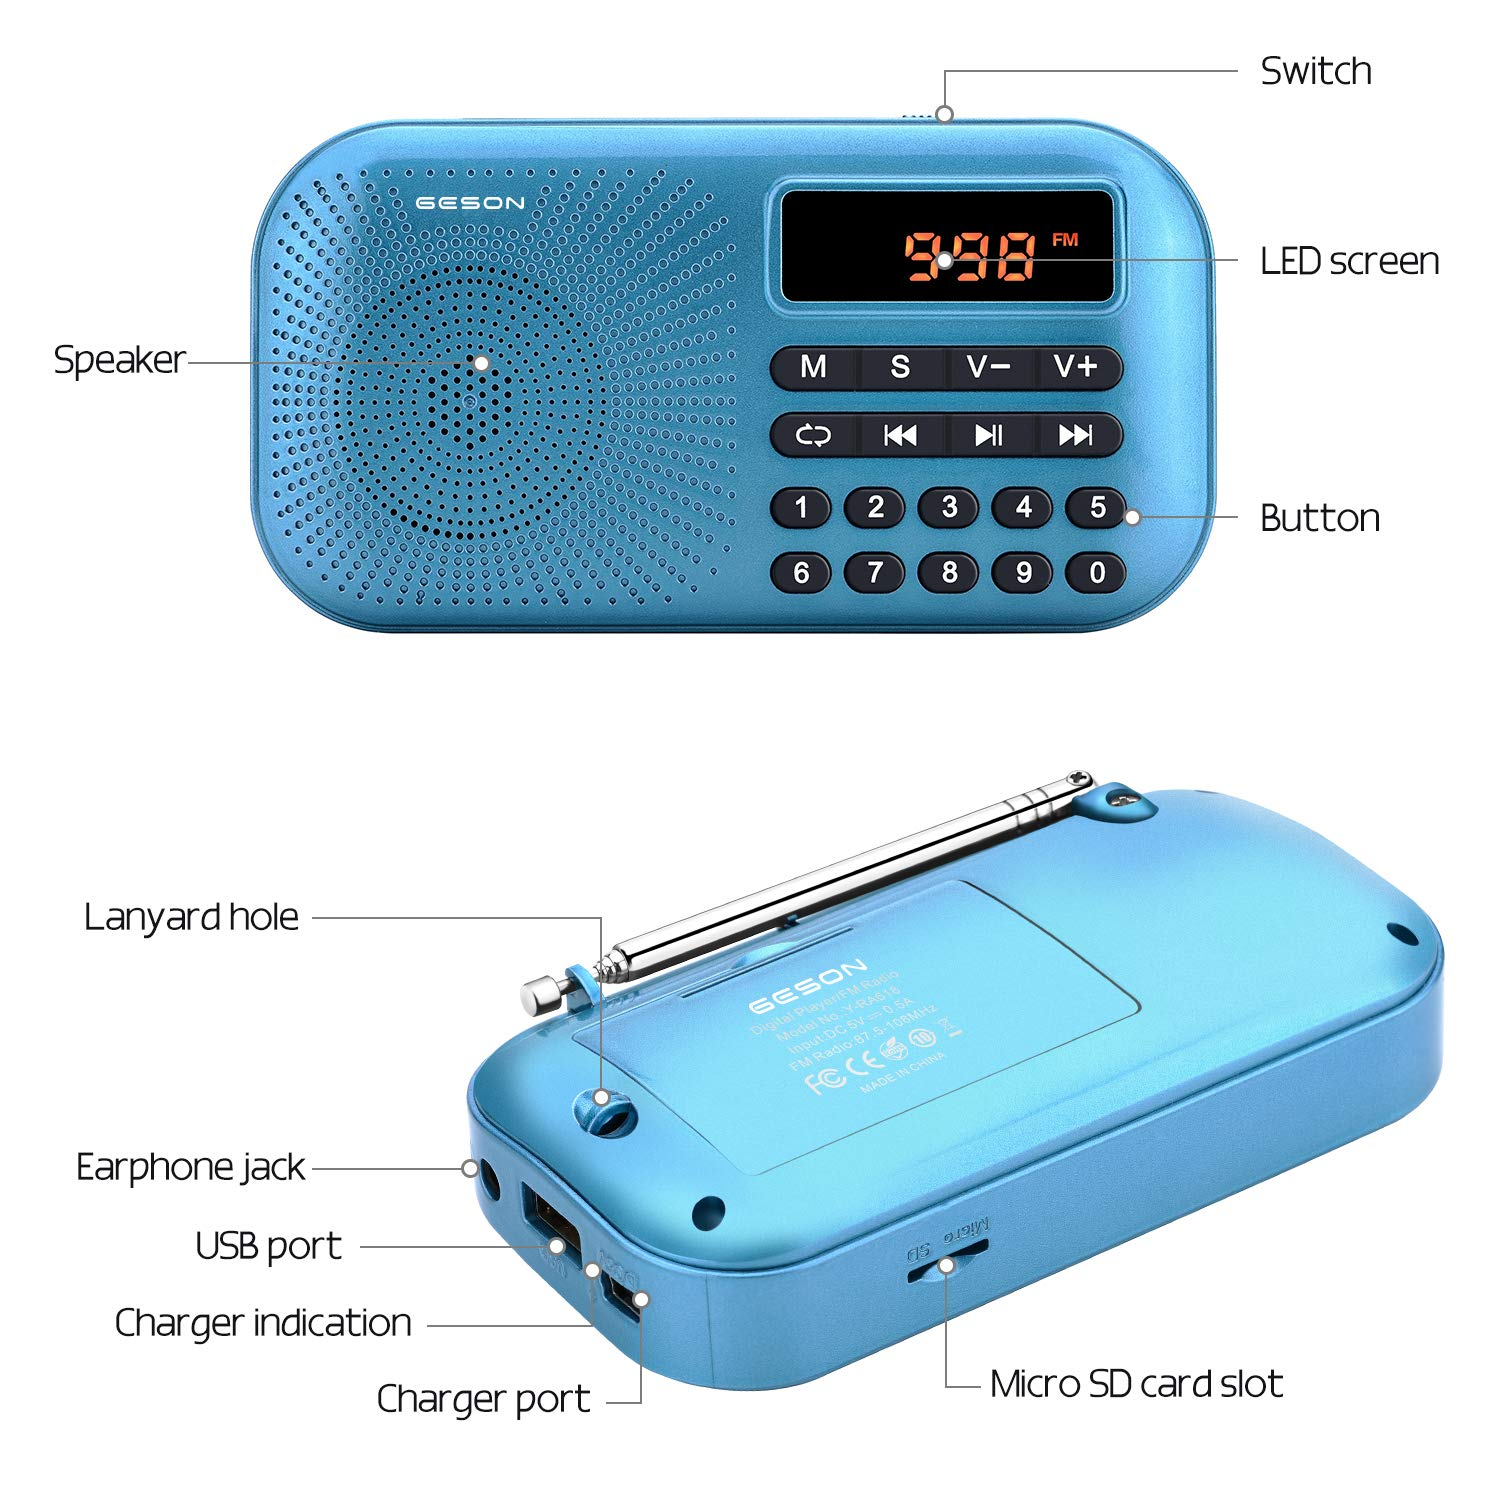 Portable AM FM Radio, Geson Mini Music Radio Player Support Micro SD Card/USB Disk with LED Screen Display (Blue) by Geson (Image #3)